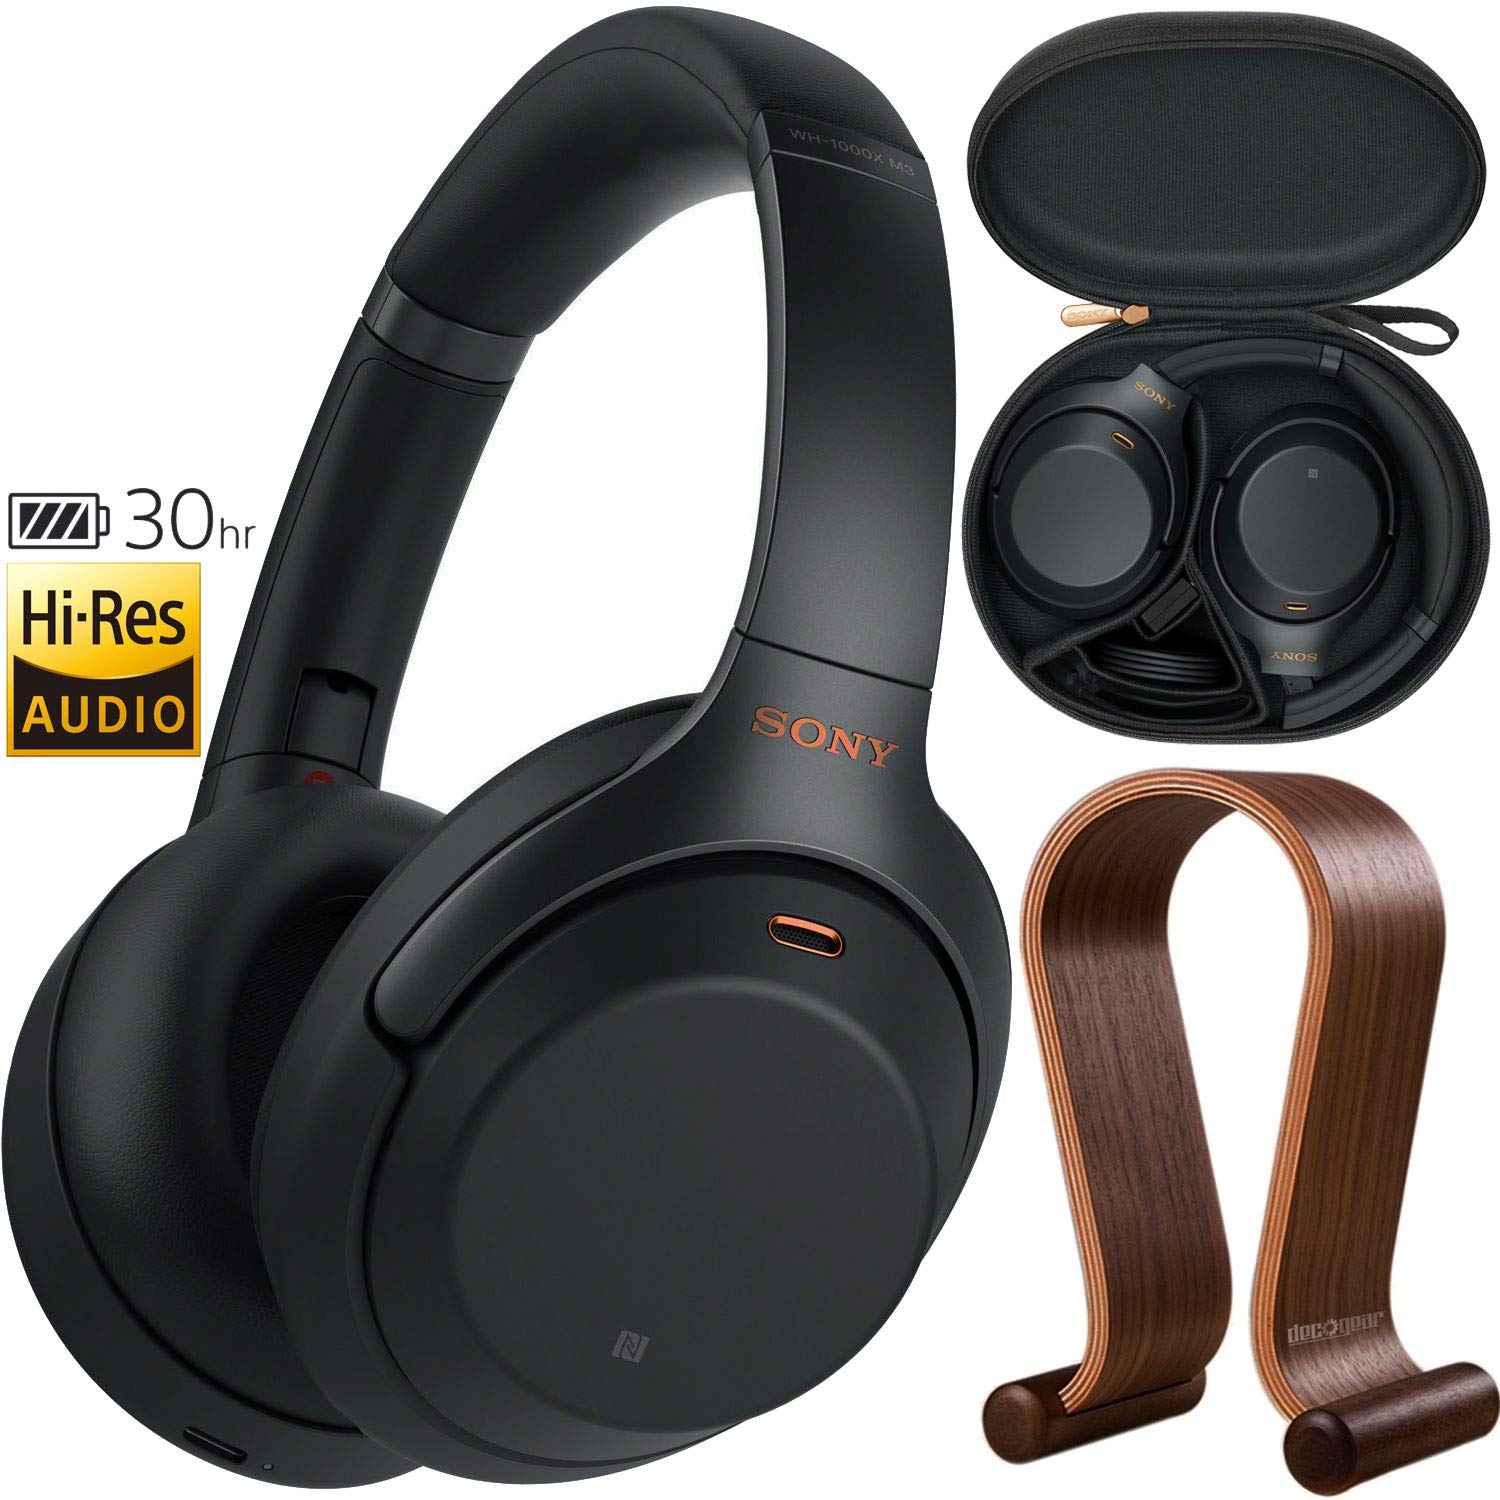 Prime Day offer: Sony noise-cancelling, wireless headphones